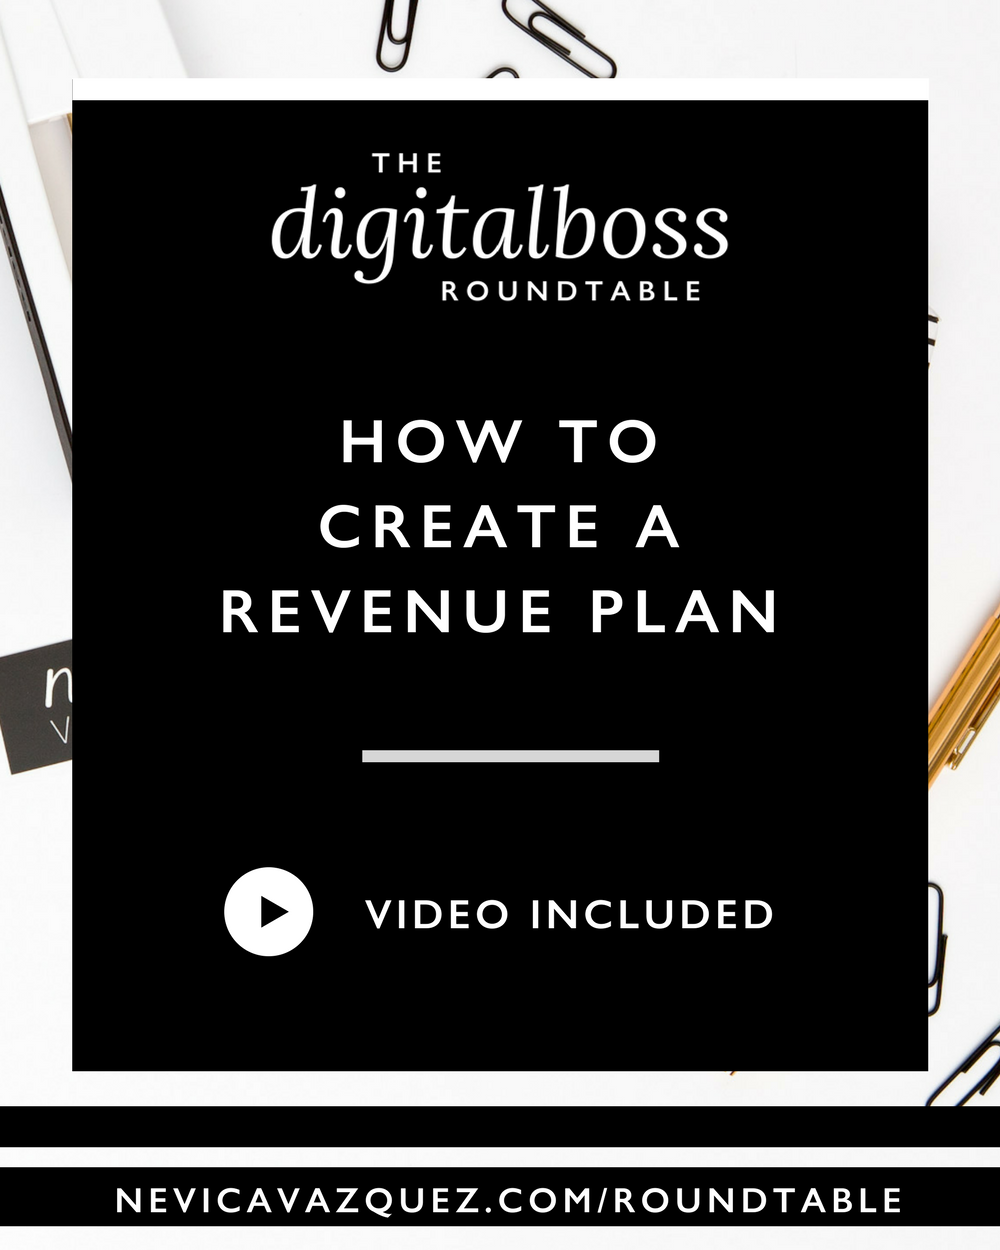 How To Create a Revenue Plan [Roundtable Series with Brittany Griggs and Mary Beth Storjohann]